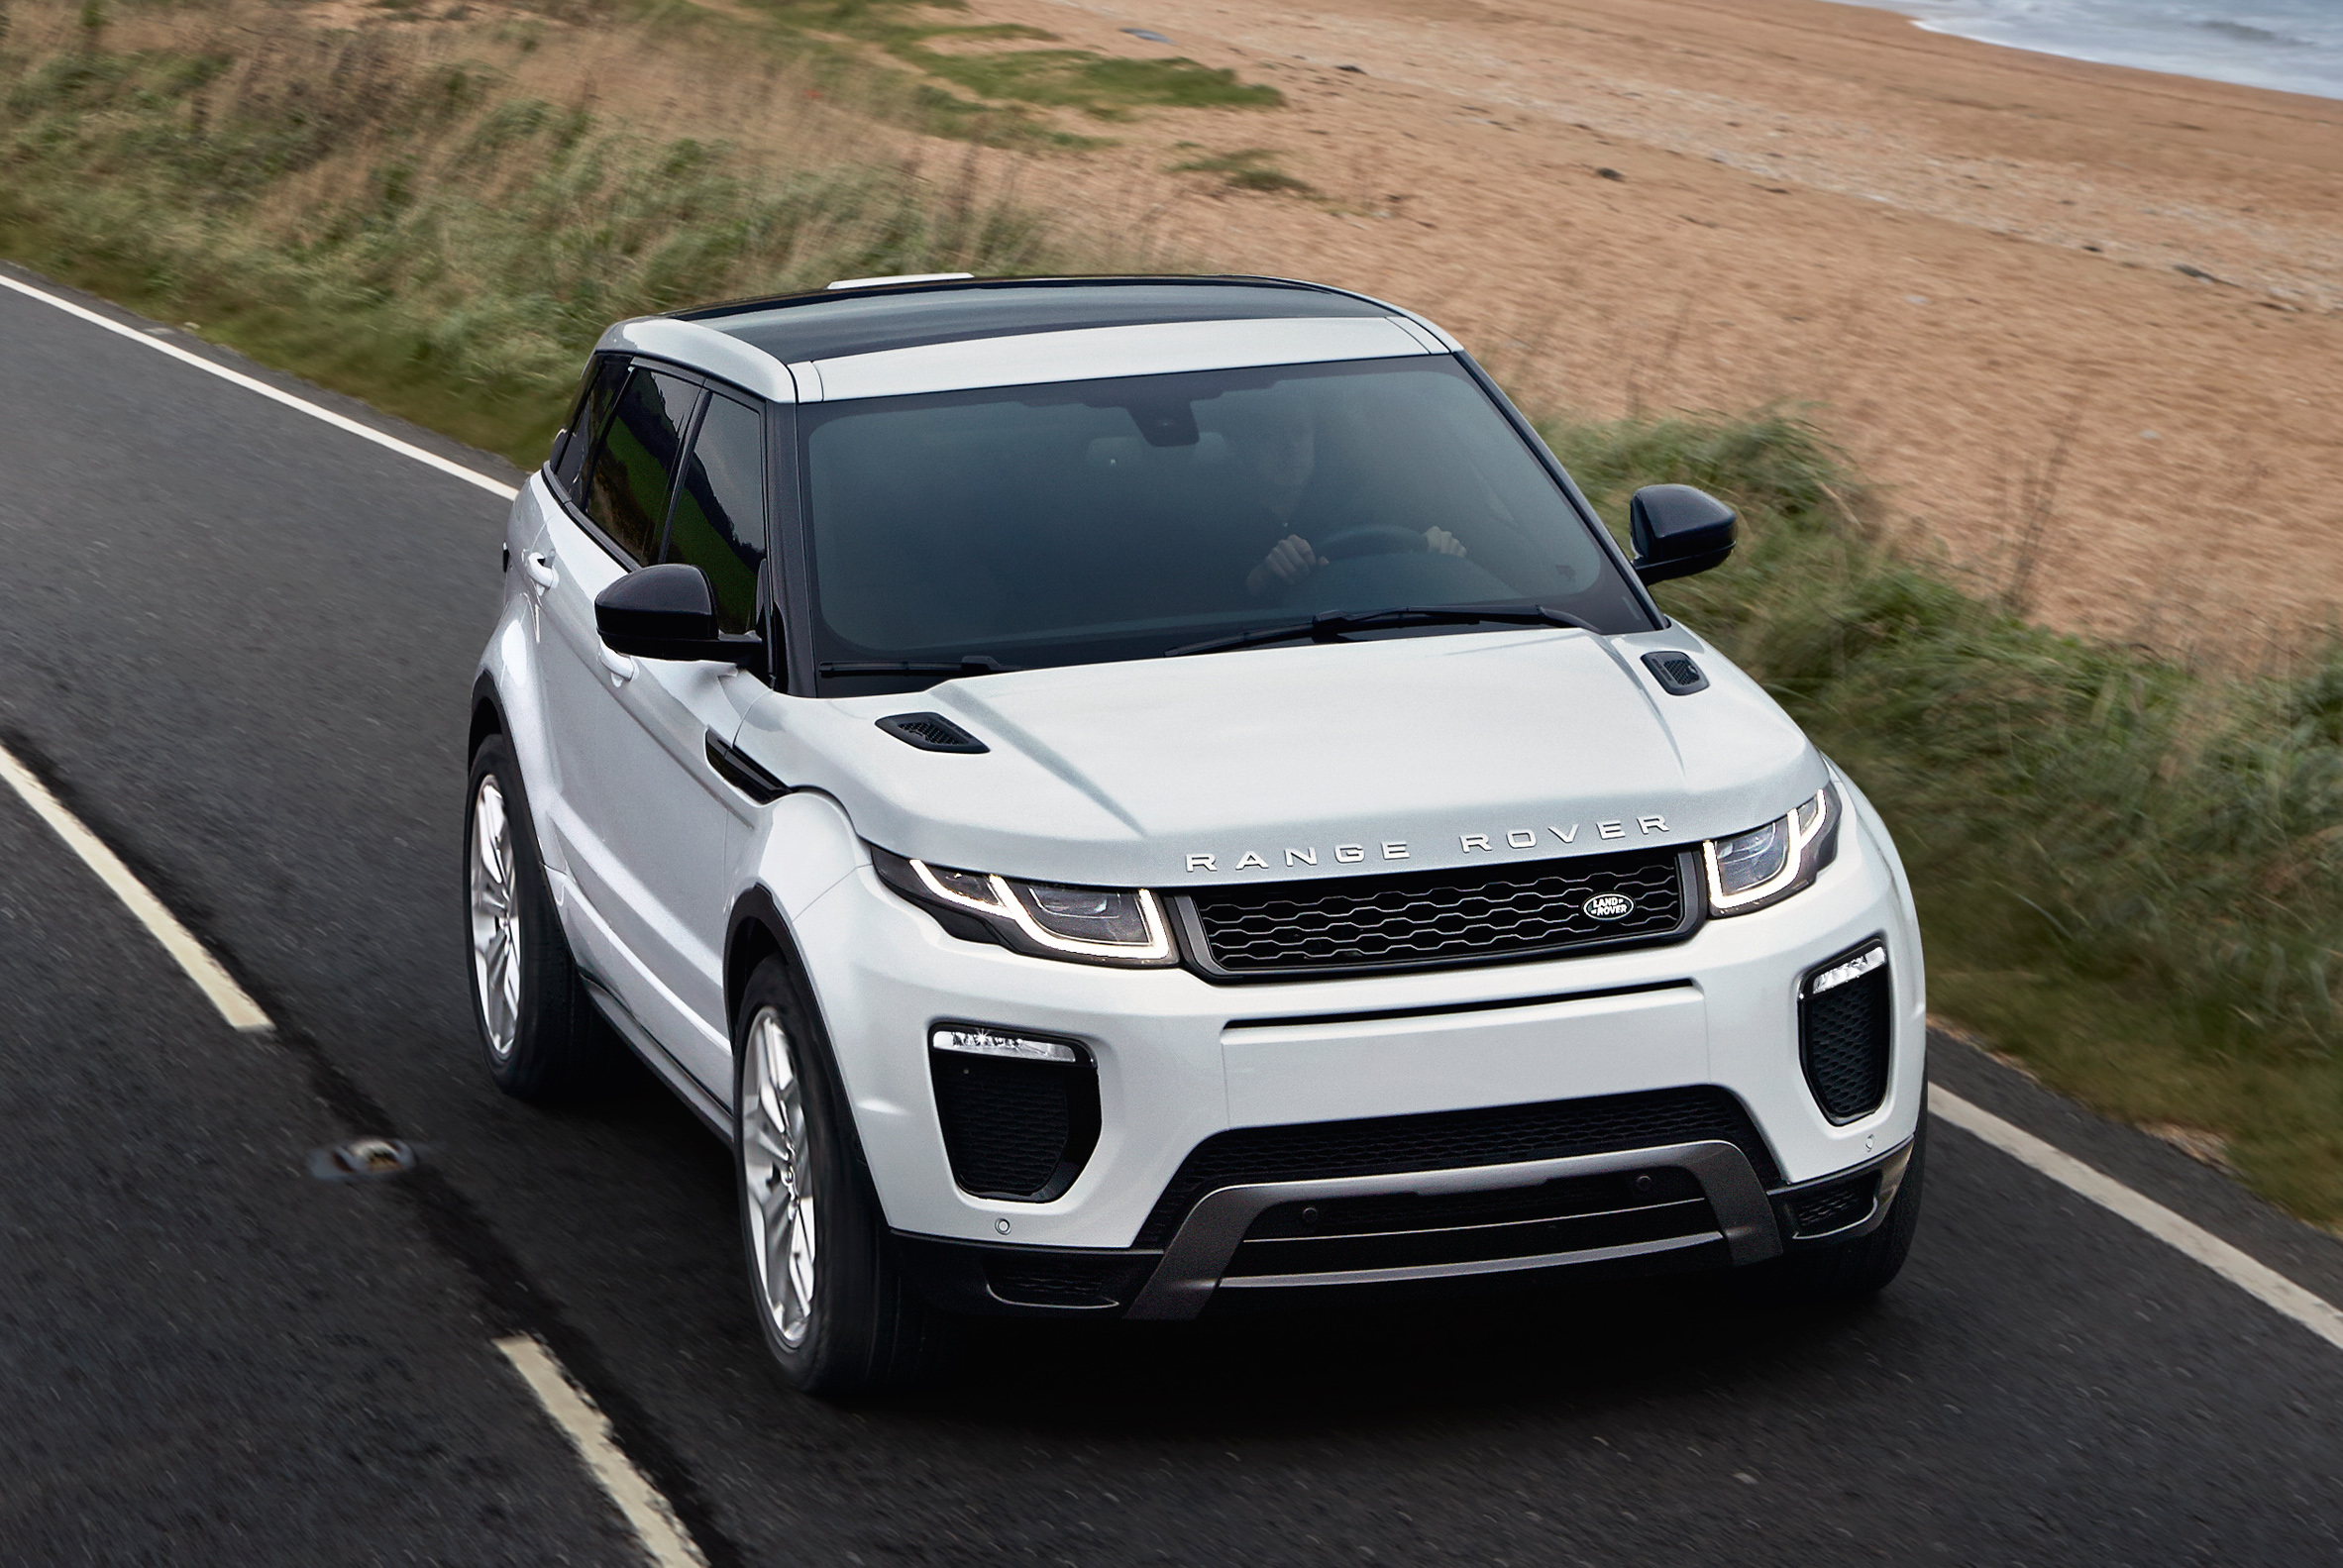 2016 range rover evoque facelift gets subtle updates image. Black Bedroom Furniture Sets. Home Design Ideas